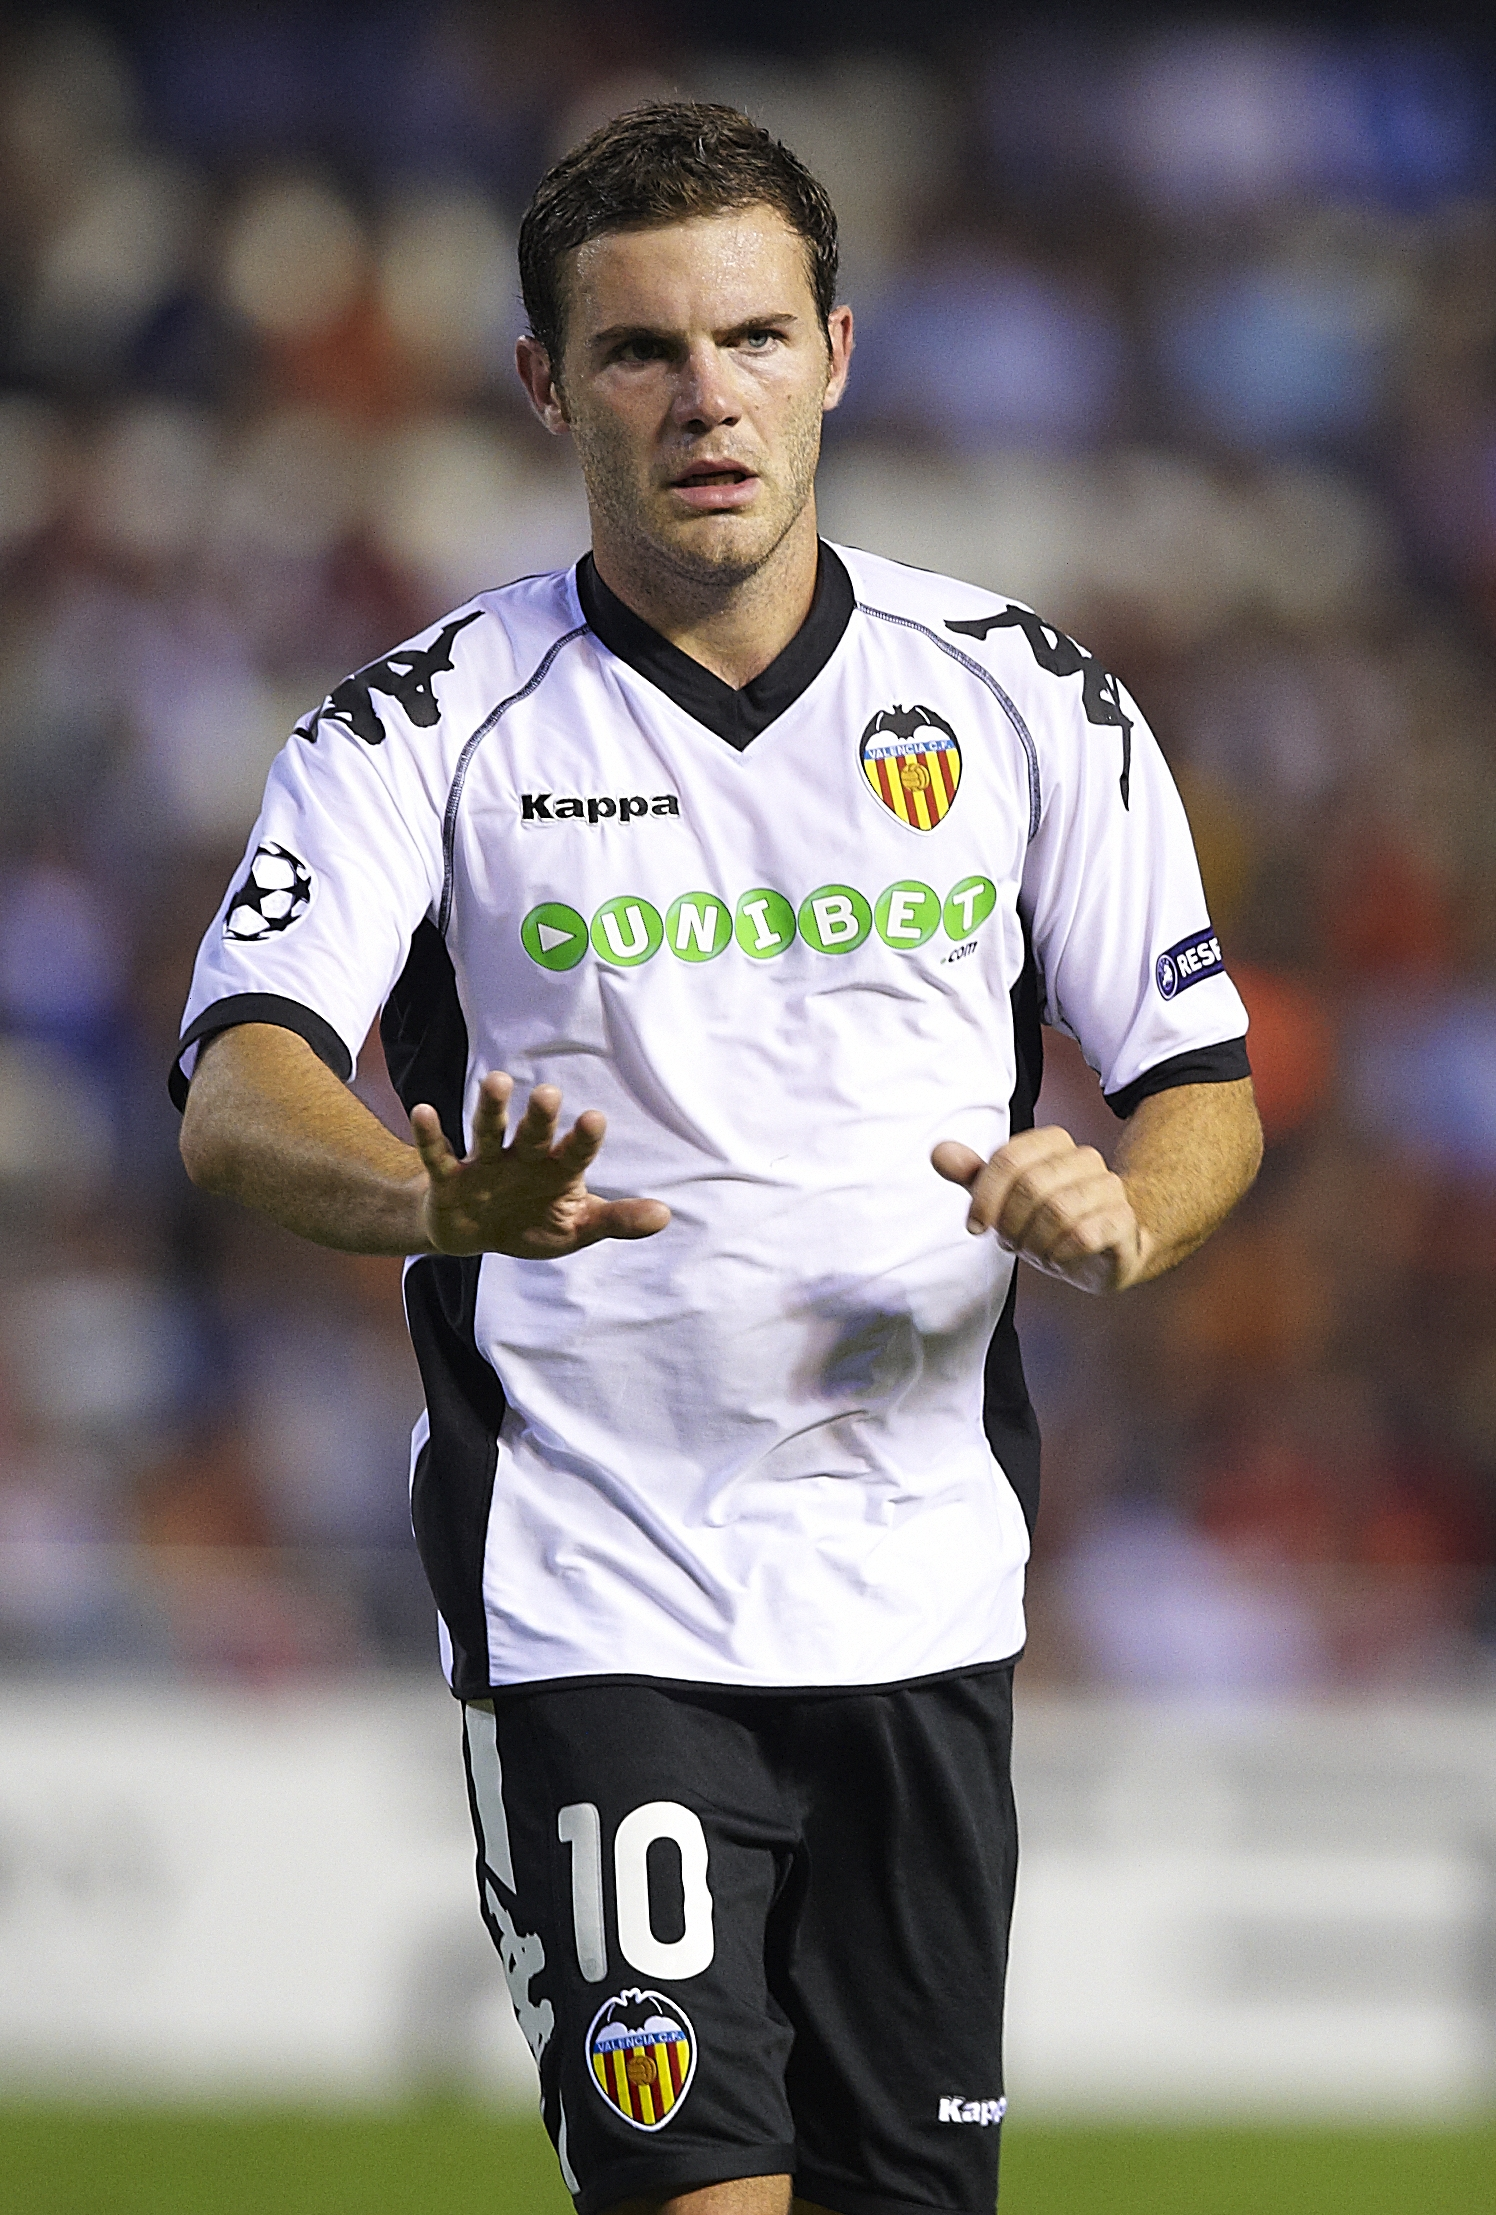 VALENCIA, SPAIN - SEPTEMBER 29:  Juan Mata of Valencia reacts during the UEFA Champions League group C match between Valencia and Manchester United on September 29, 2010 in Valencia, Spain. Manchester United won 1-0.  (Photo by Manuel Queimadelos Alonso/G